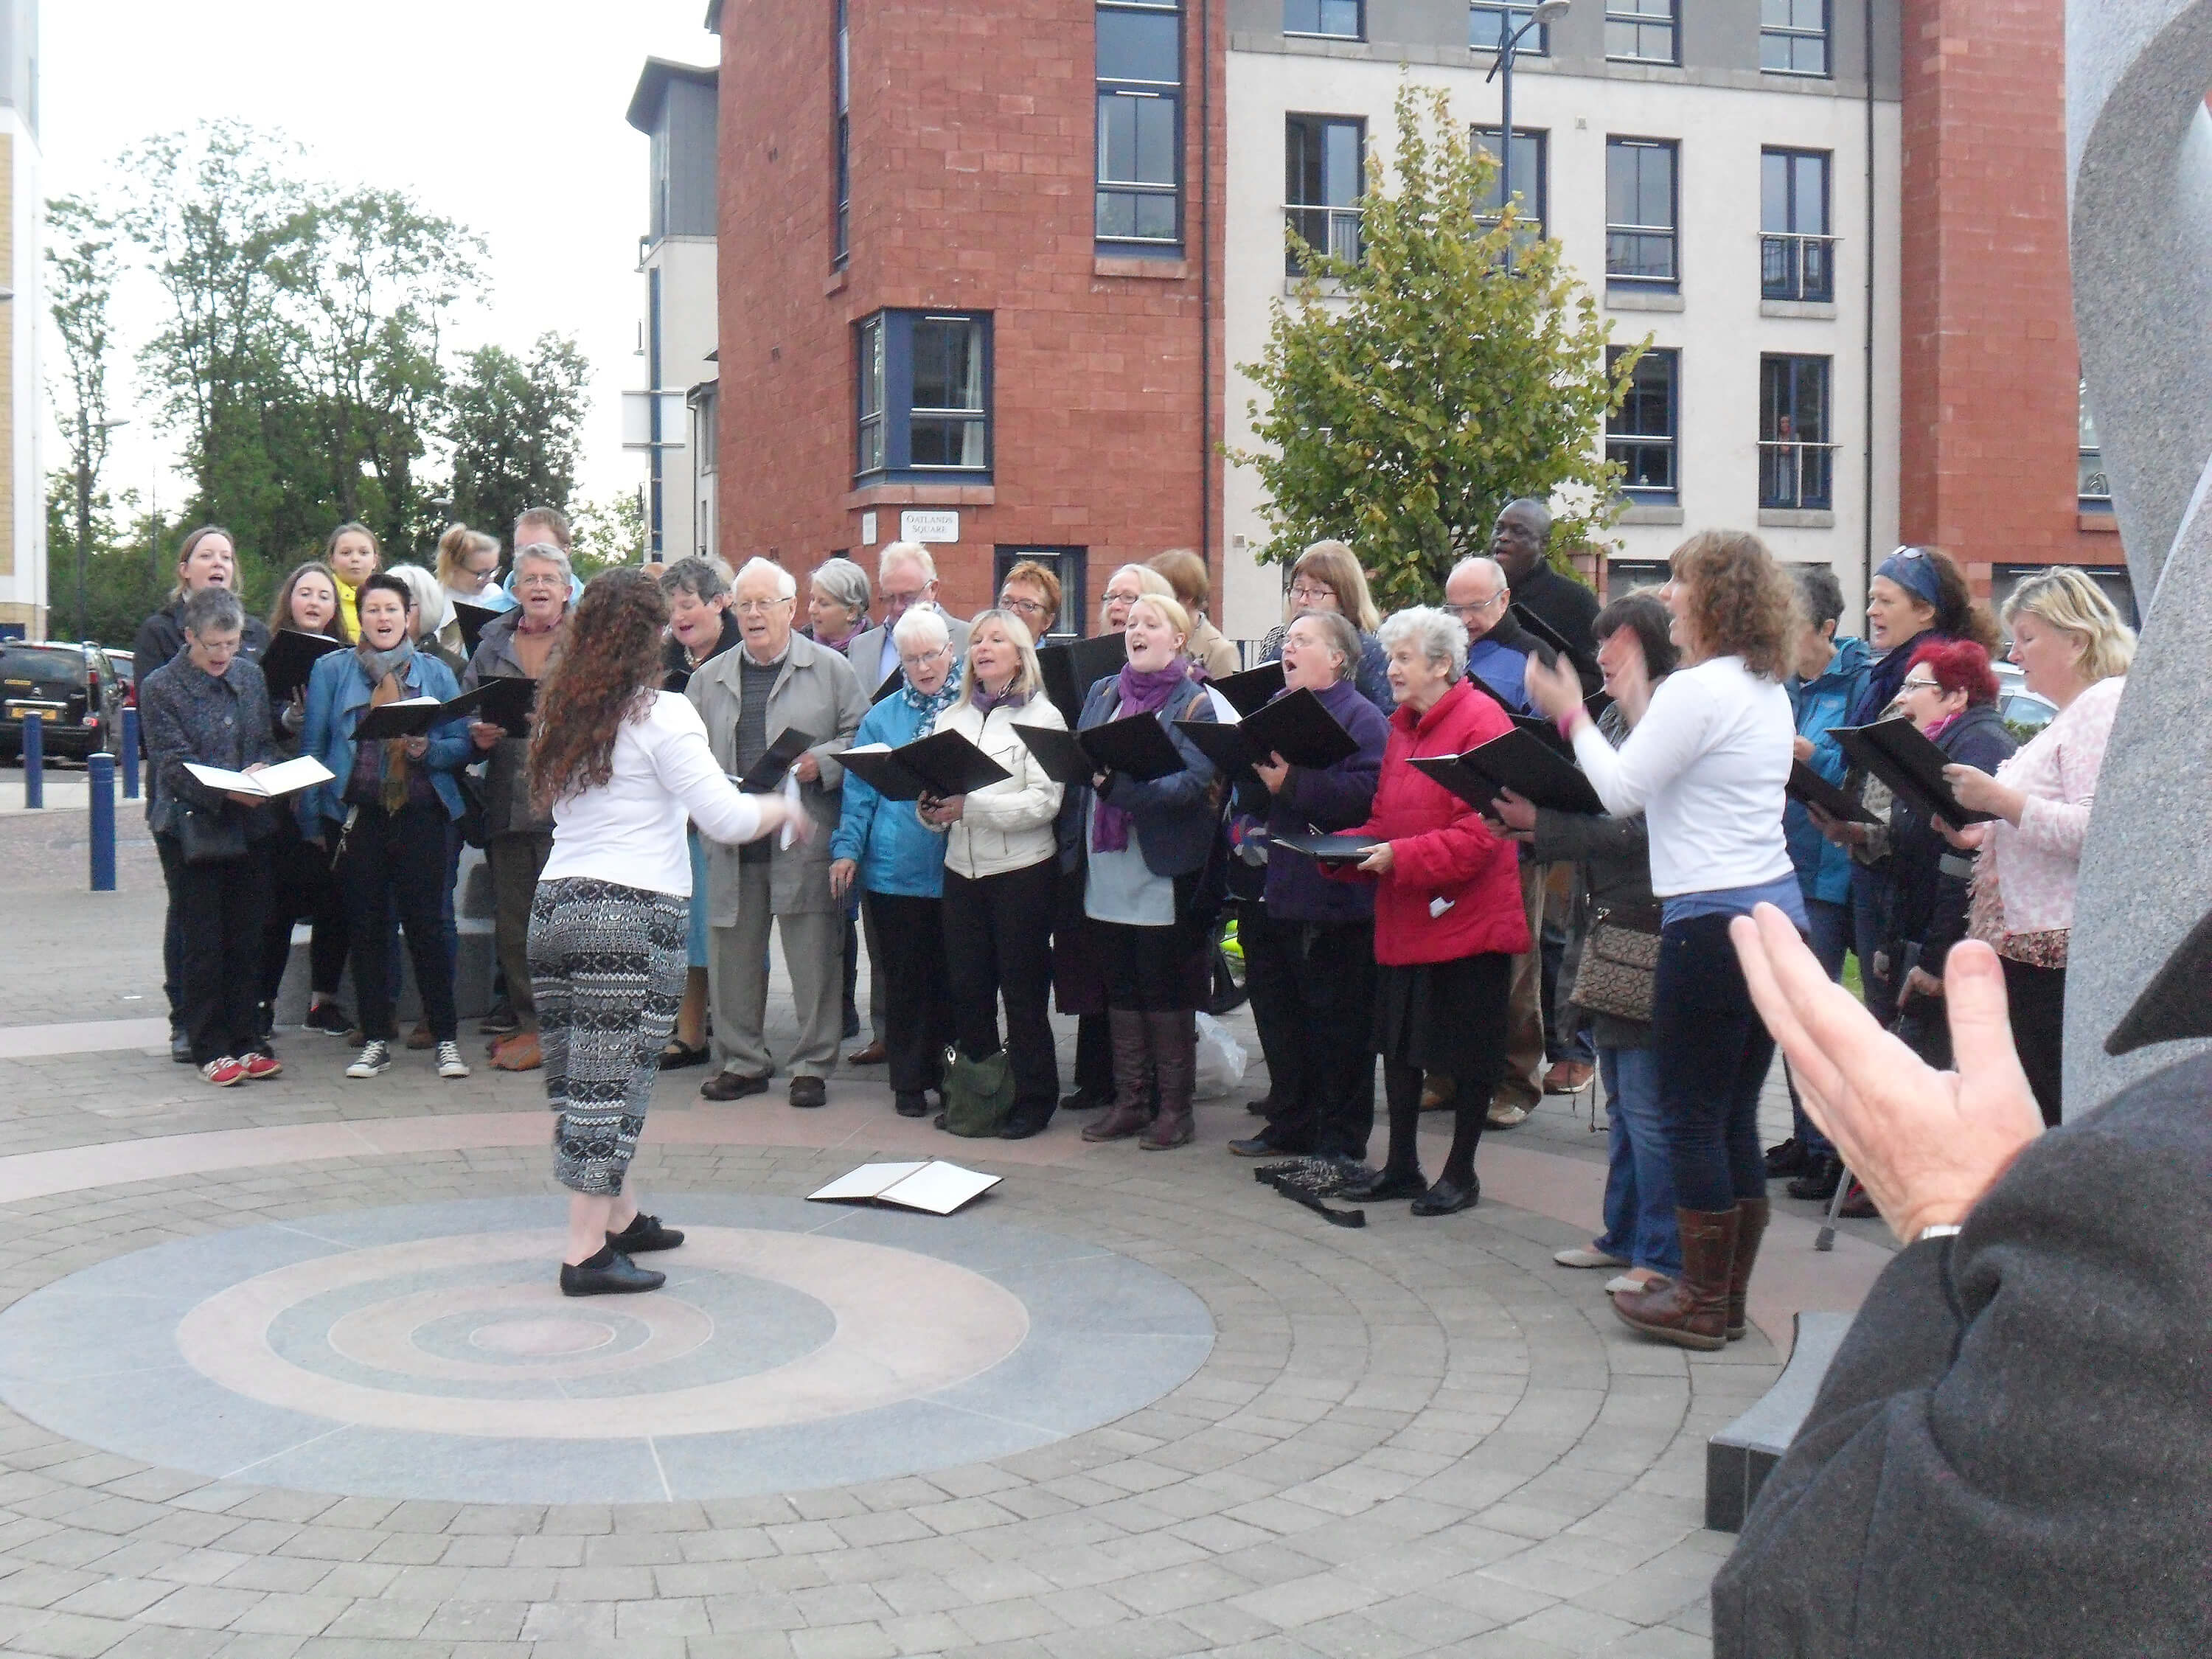 Gorbals Community Choir